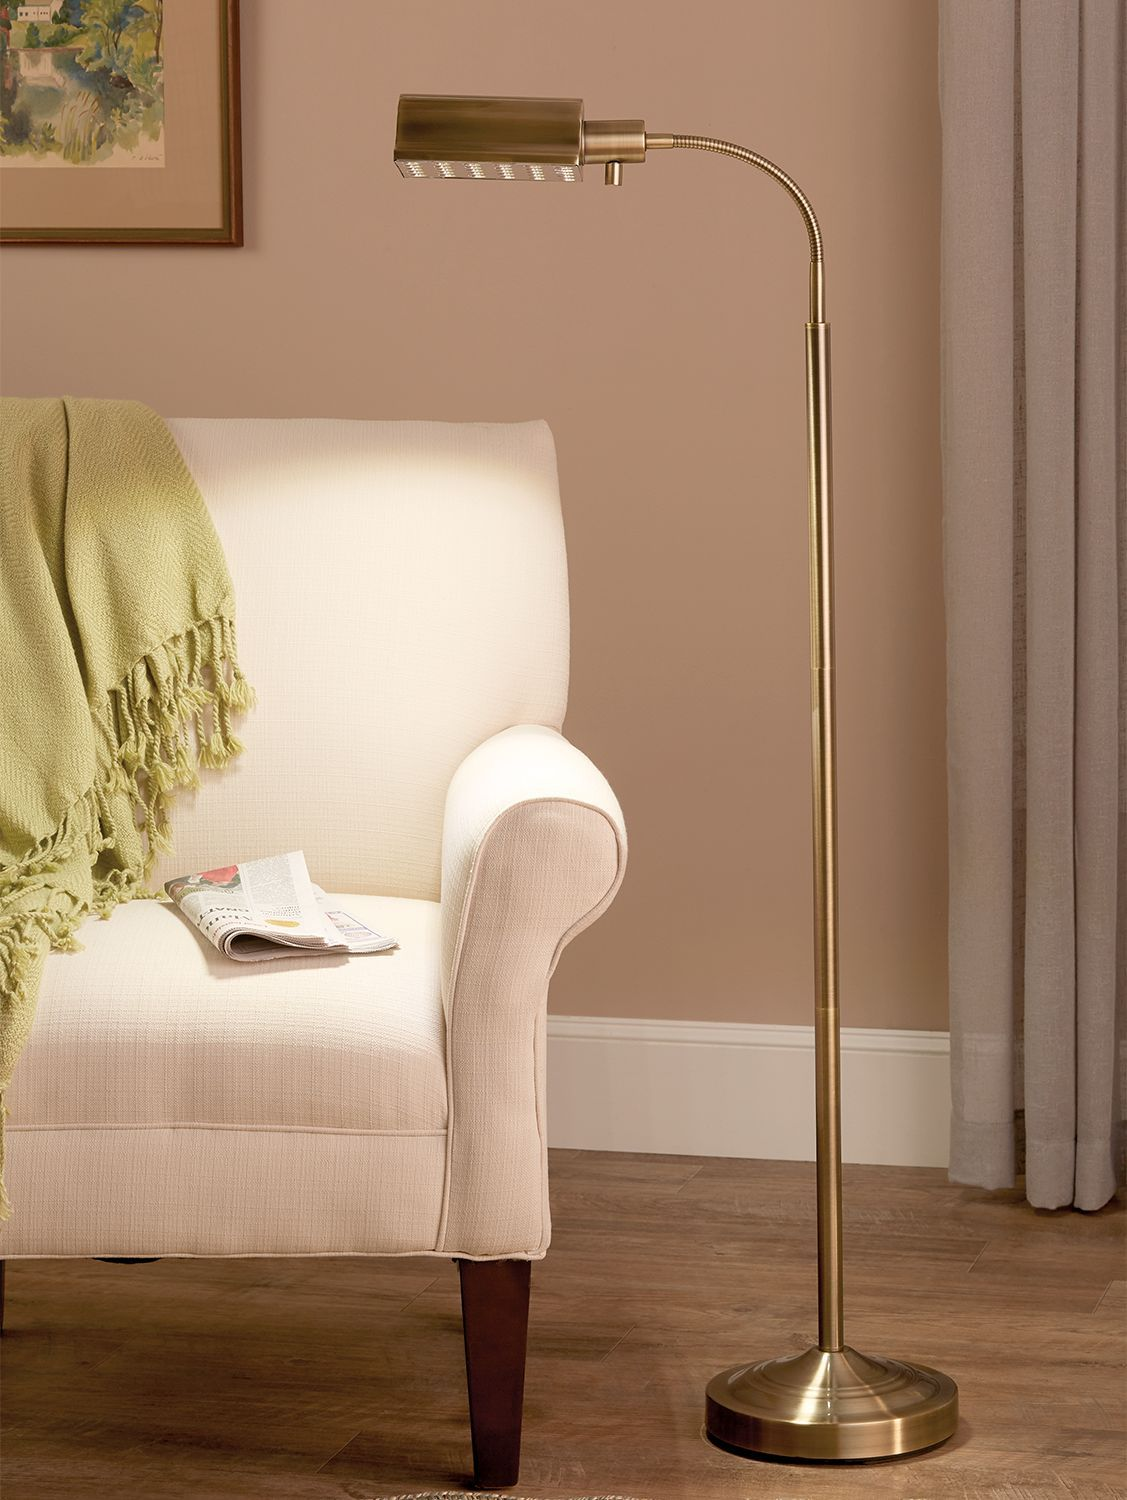 Let There Be Light Led Reading Lamp Runs On Batteries Or Plugs In